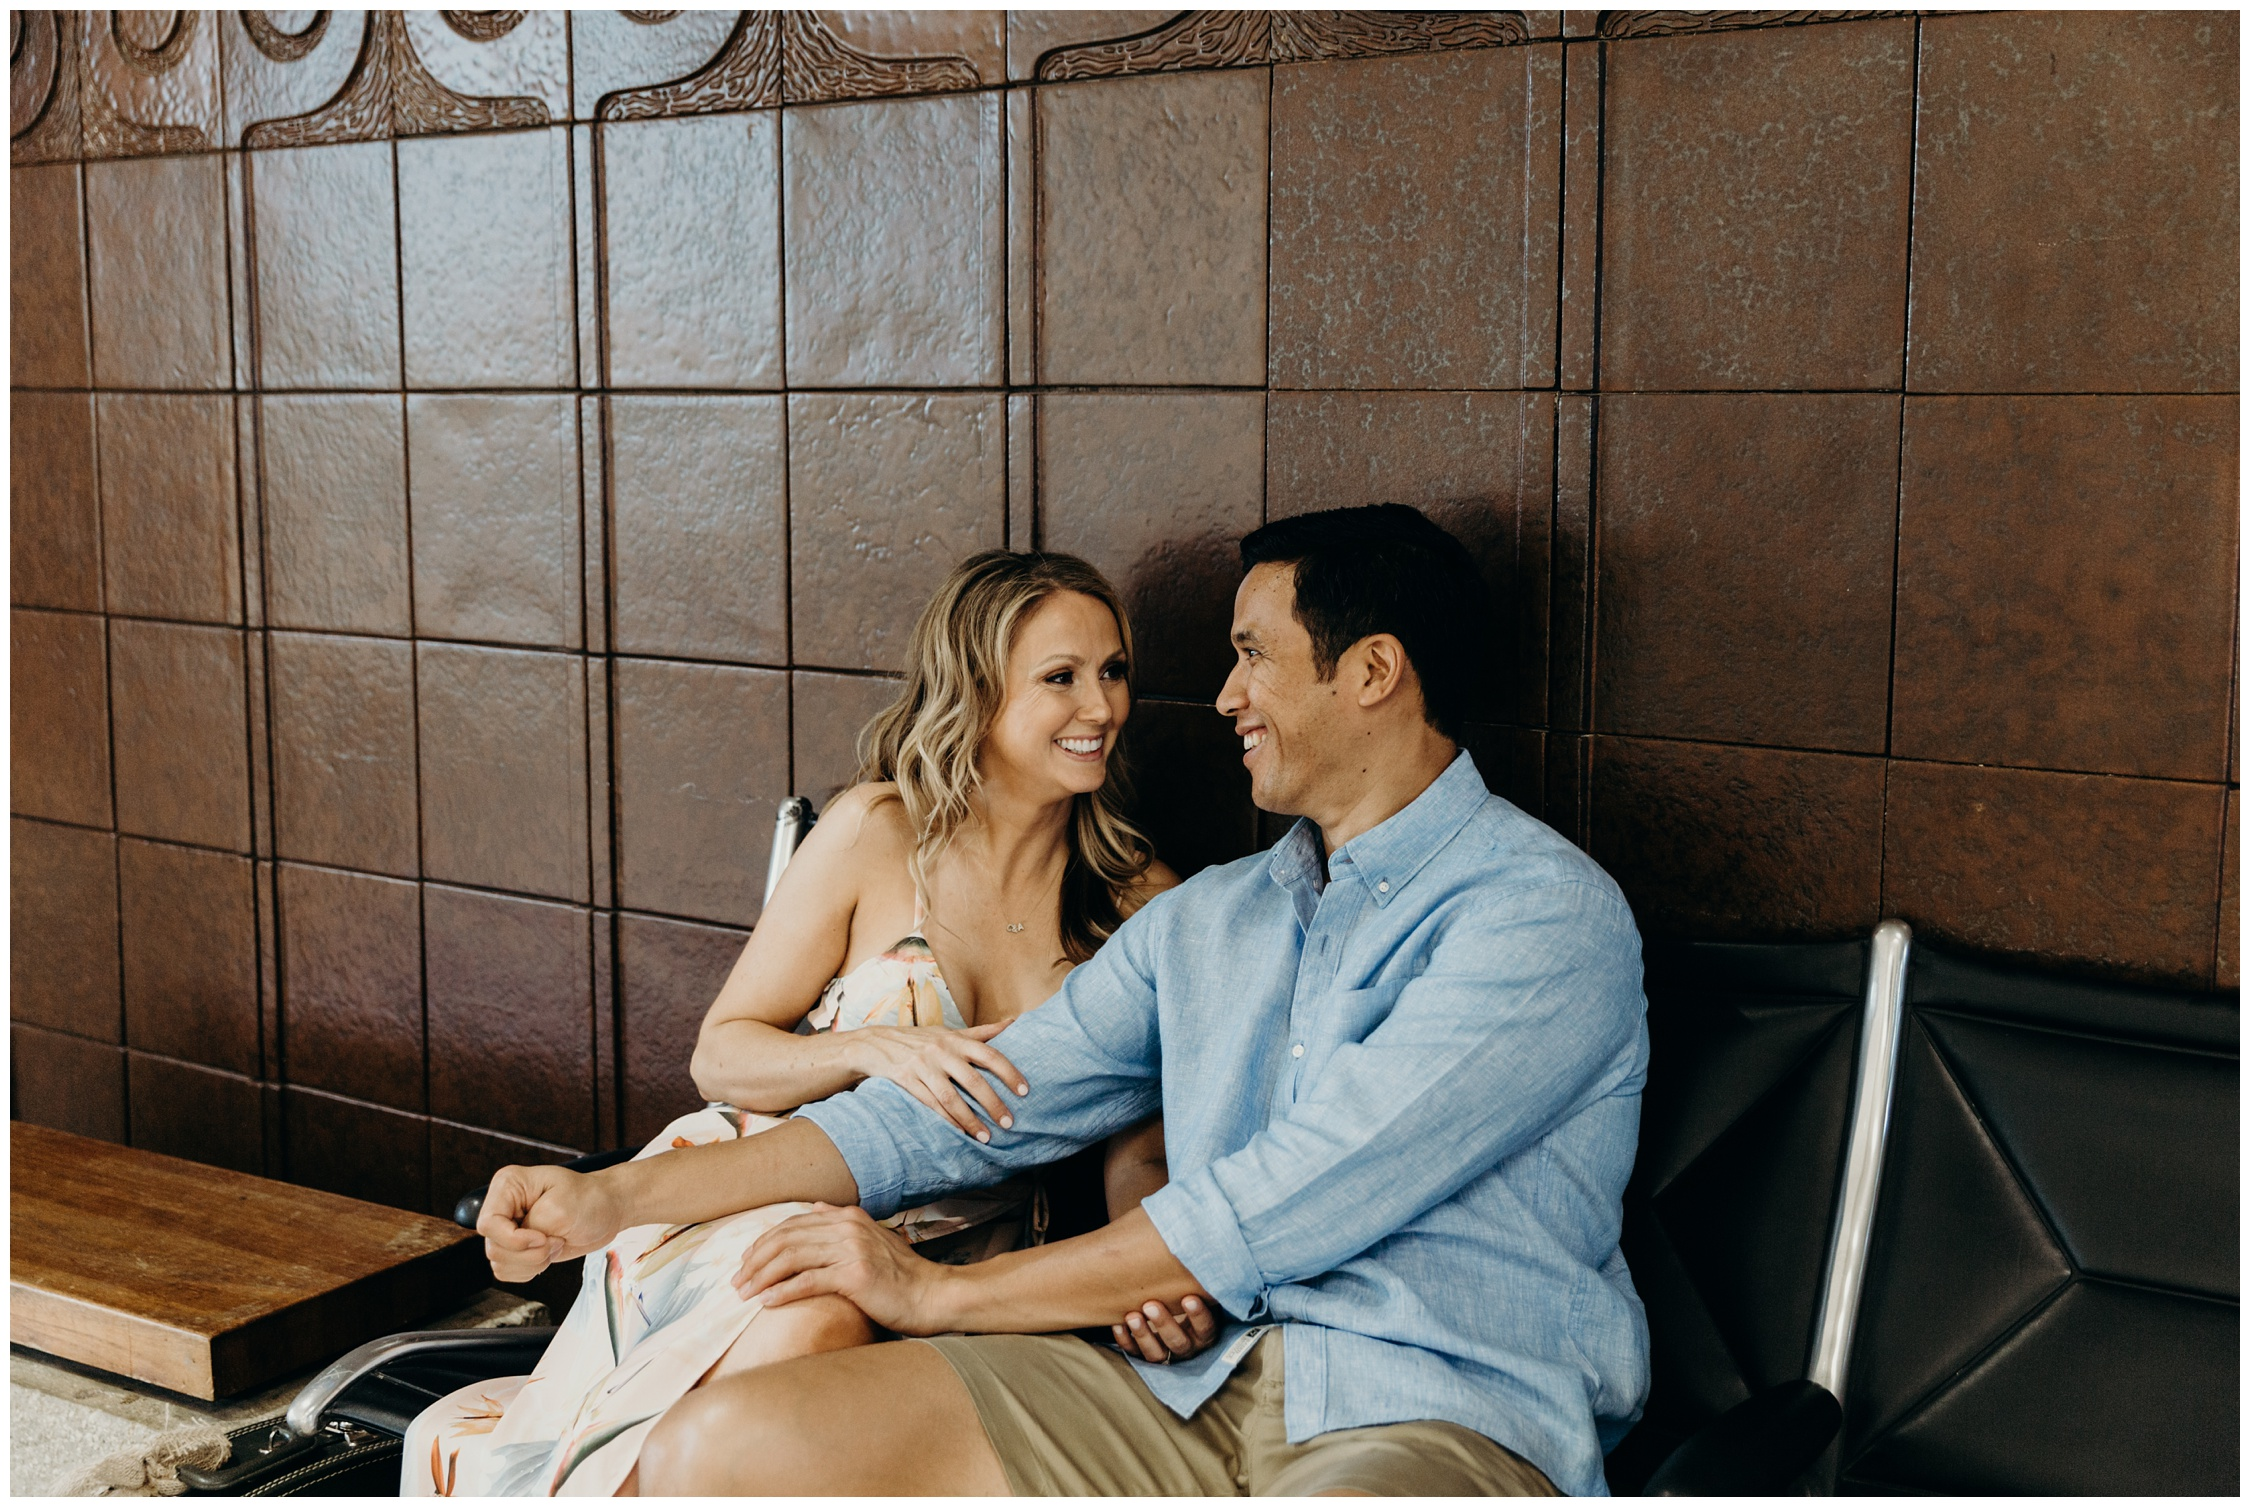 Hawaii-Engagement-Photographer-Keani-Bakula-Honolulu-International-Airport_0041.jpg